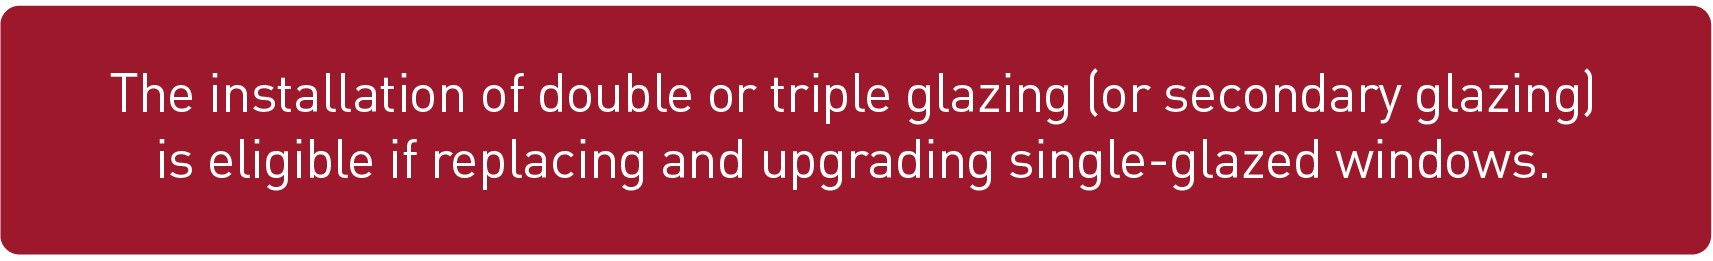 The installation of double or triple glazing (or secondary glazing) is eligible if replacing and upgrading single-glazed windows.